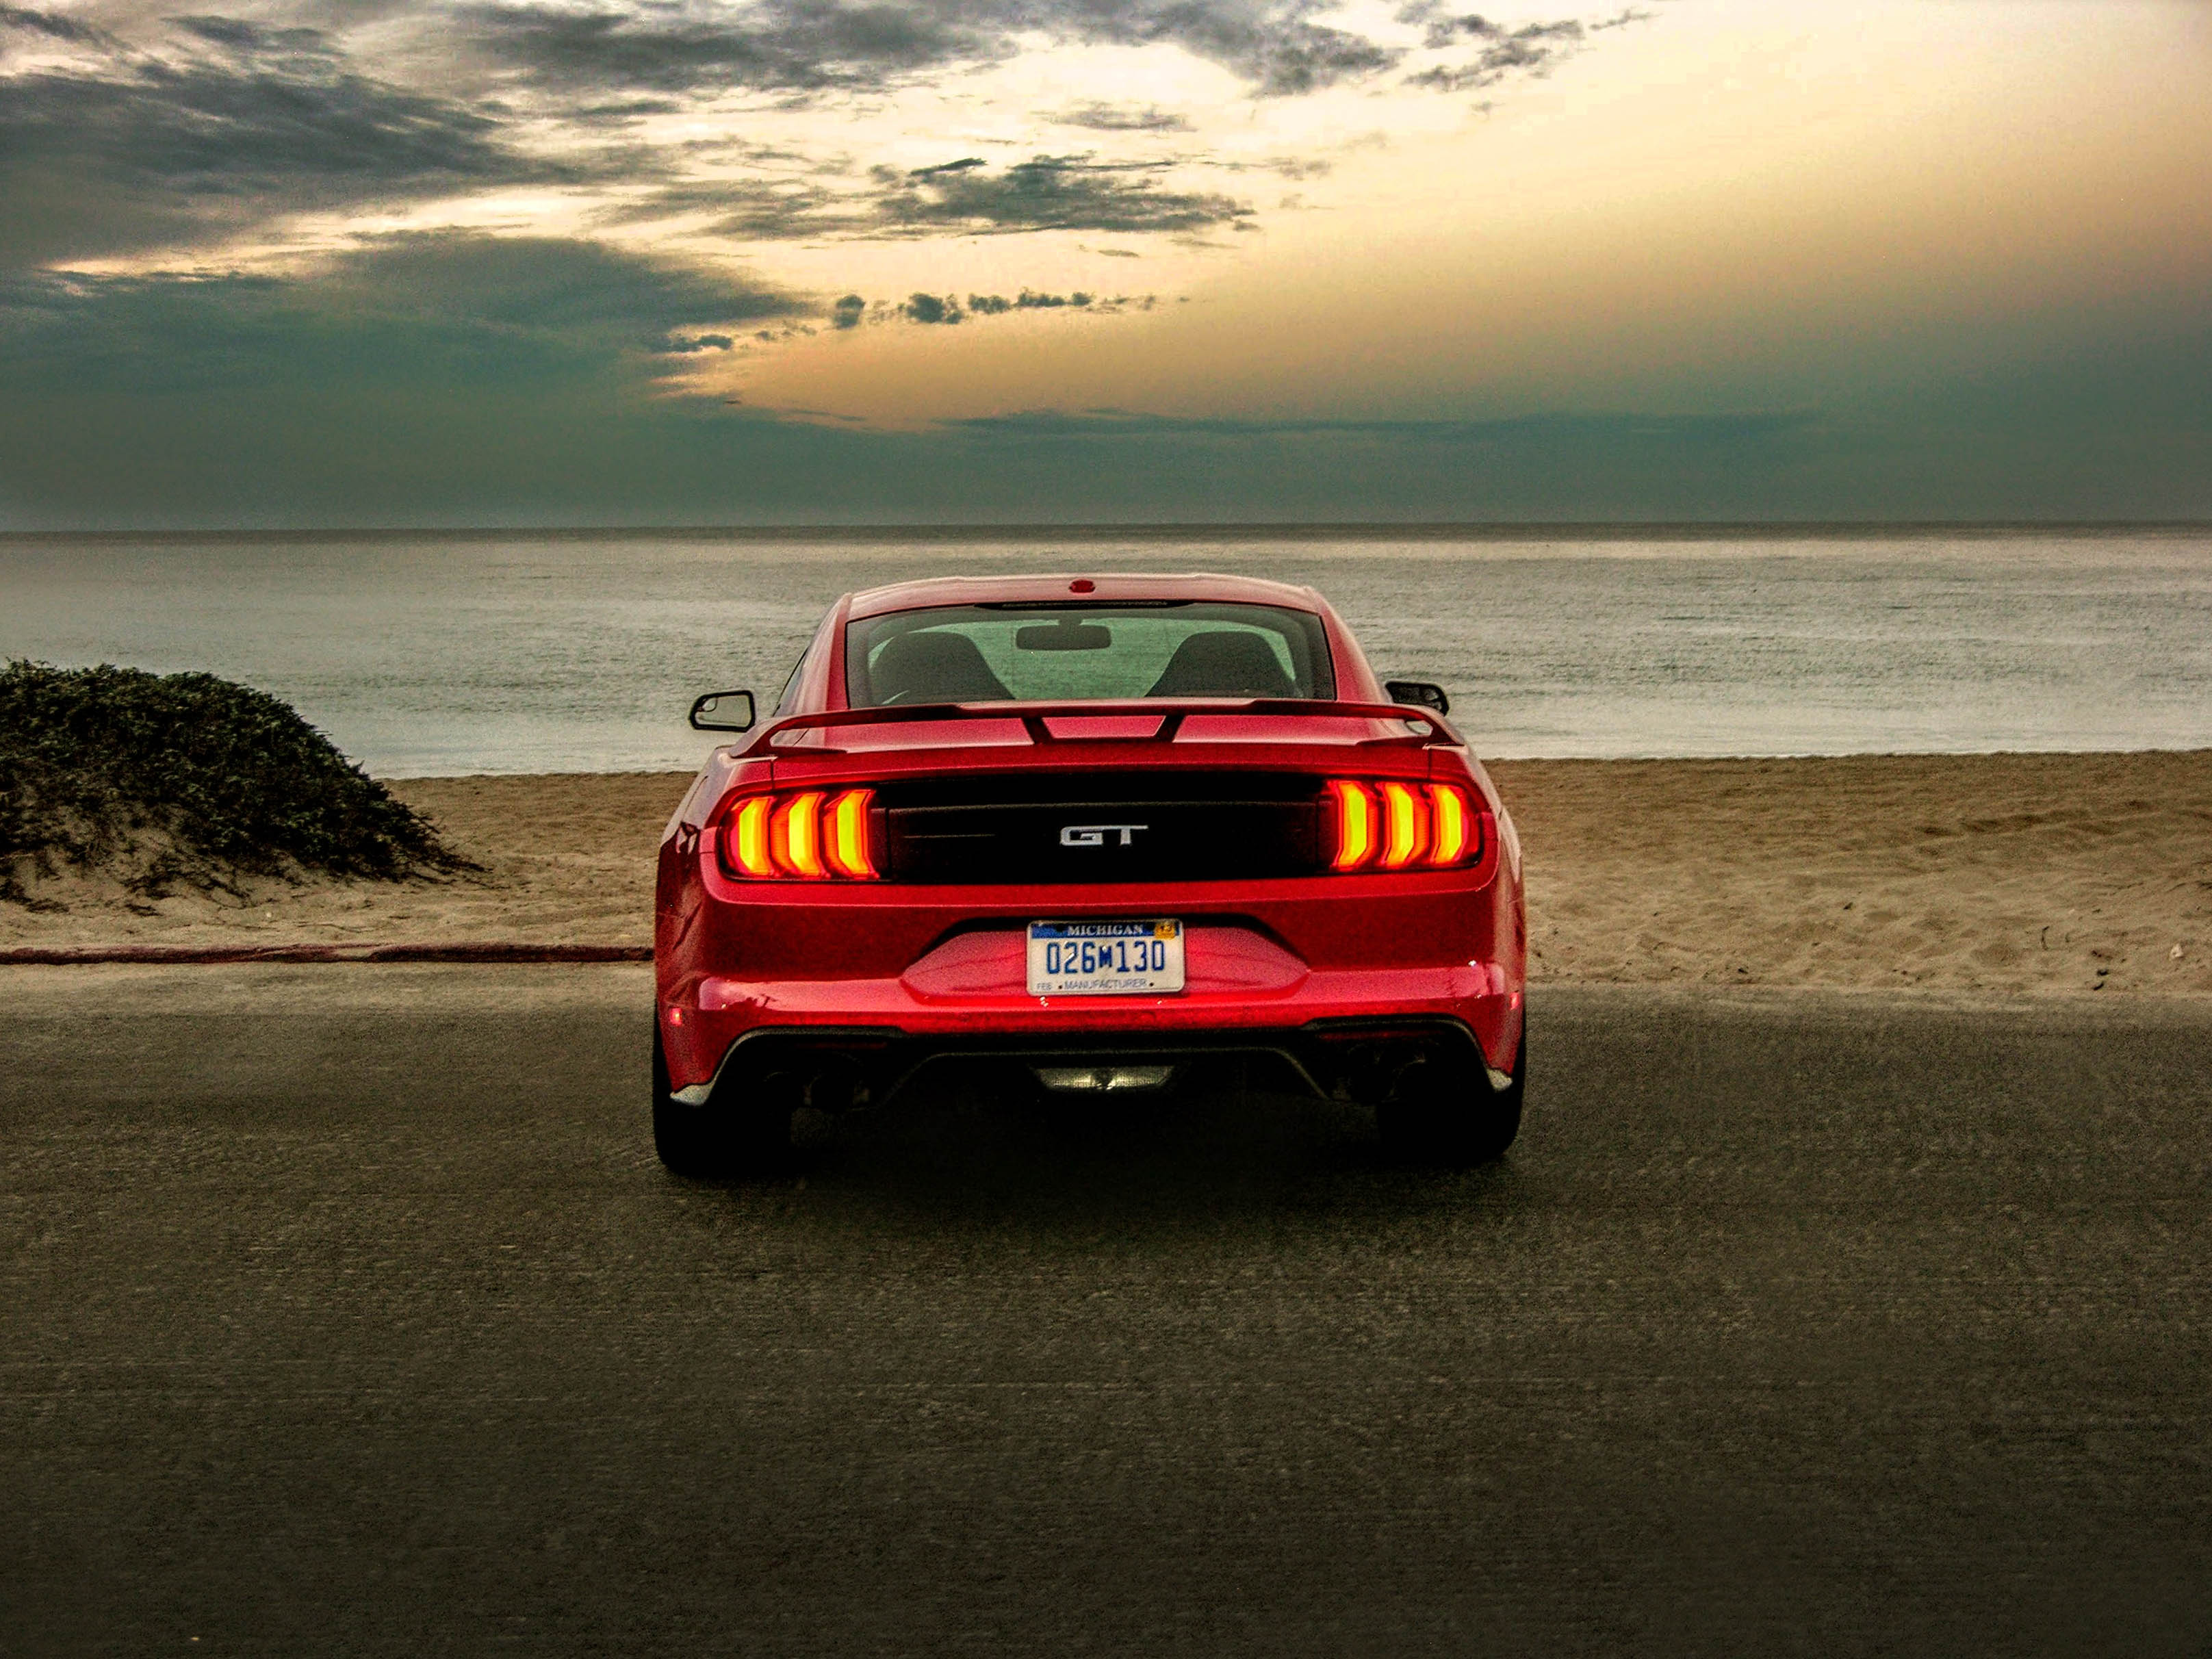 The mustang trumps the similarly outfitted camaro with superior visibility interior build quality and manual gearbox precision